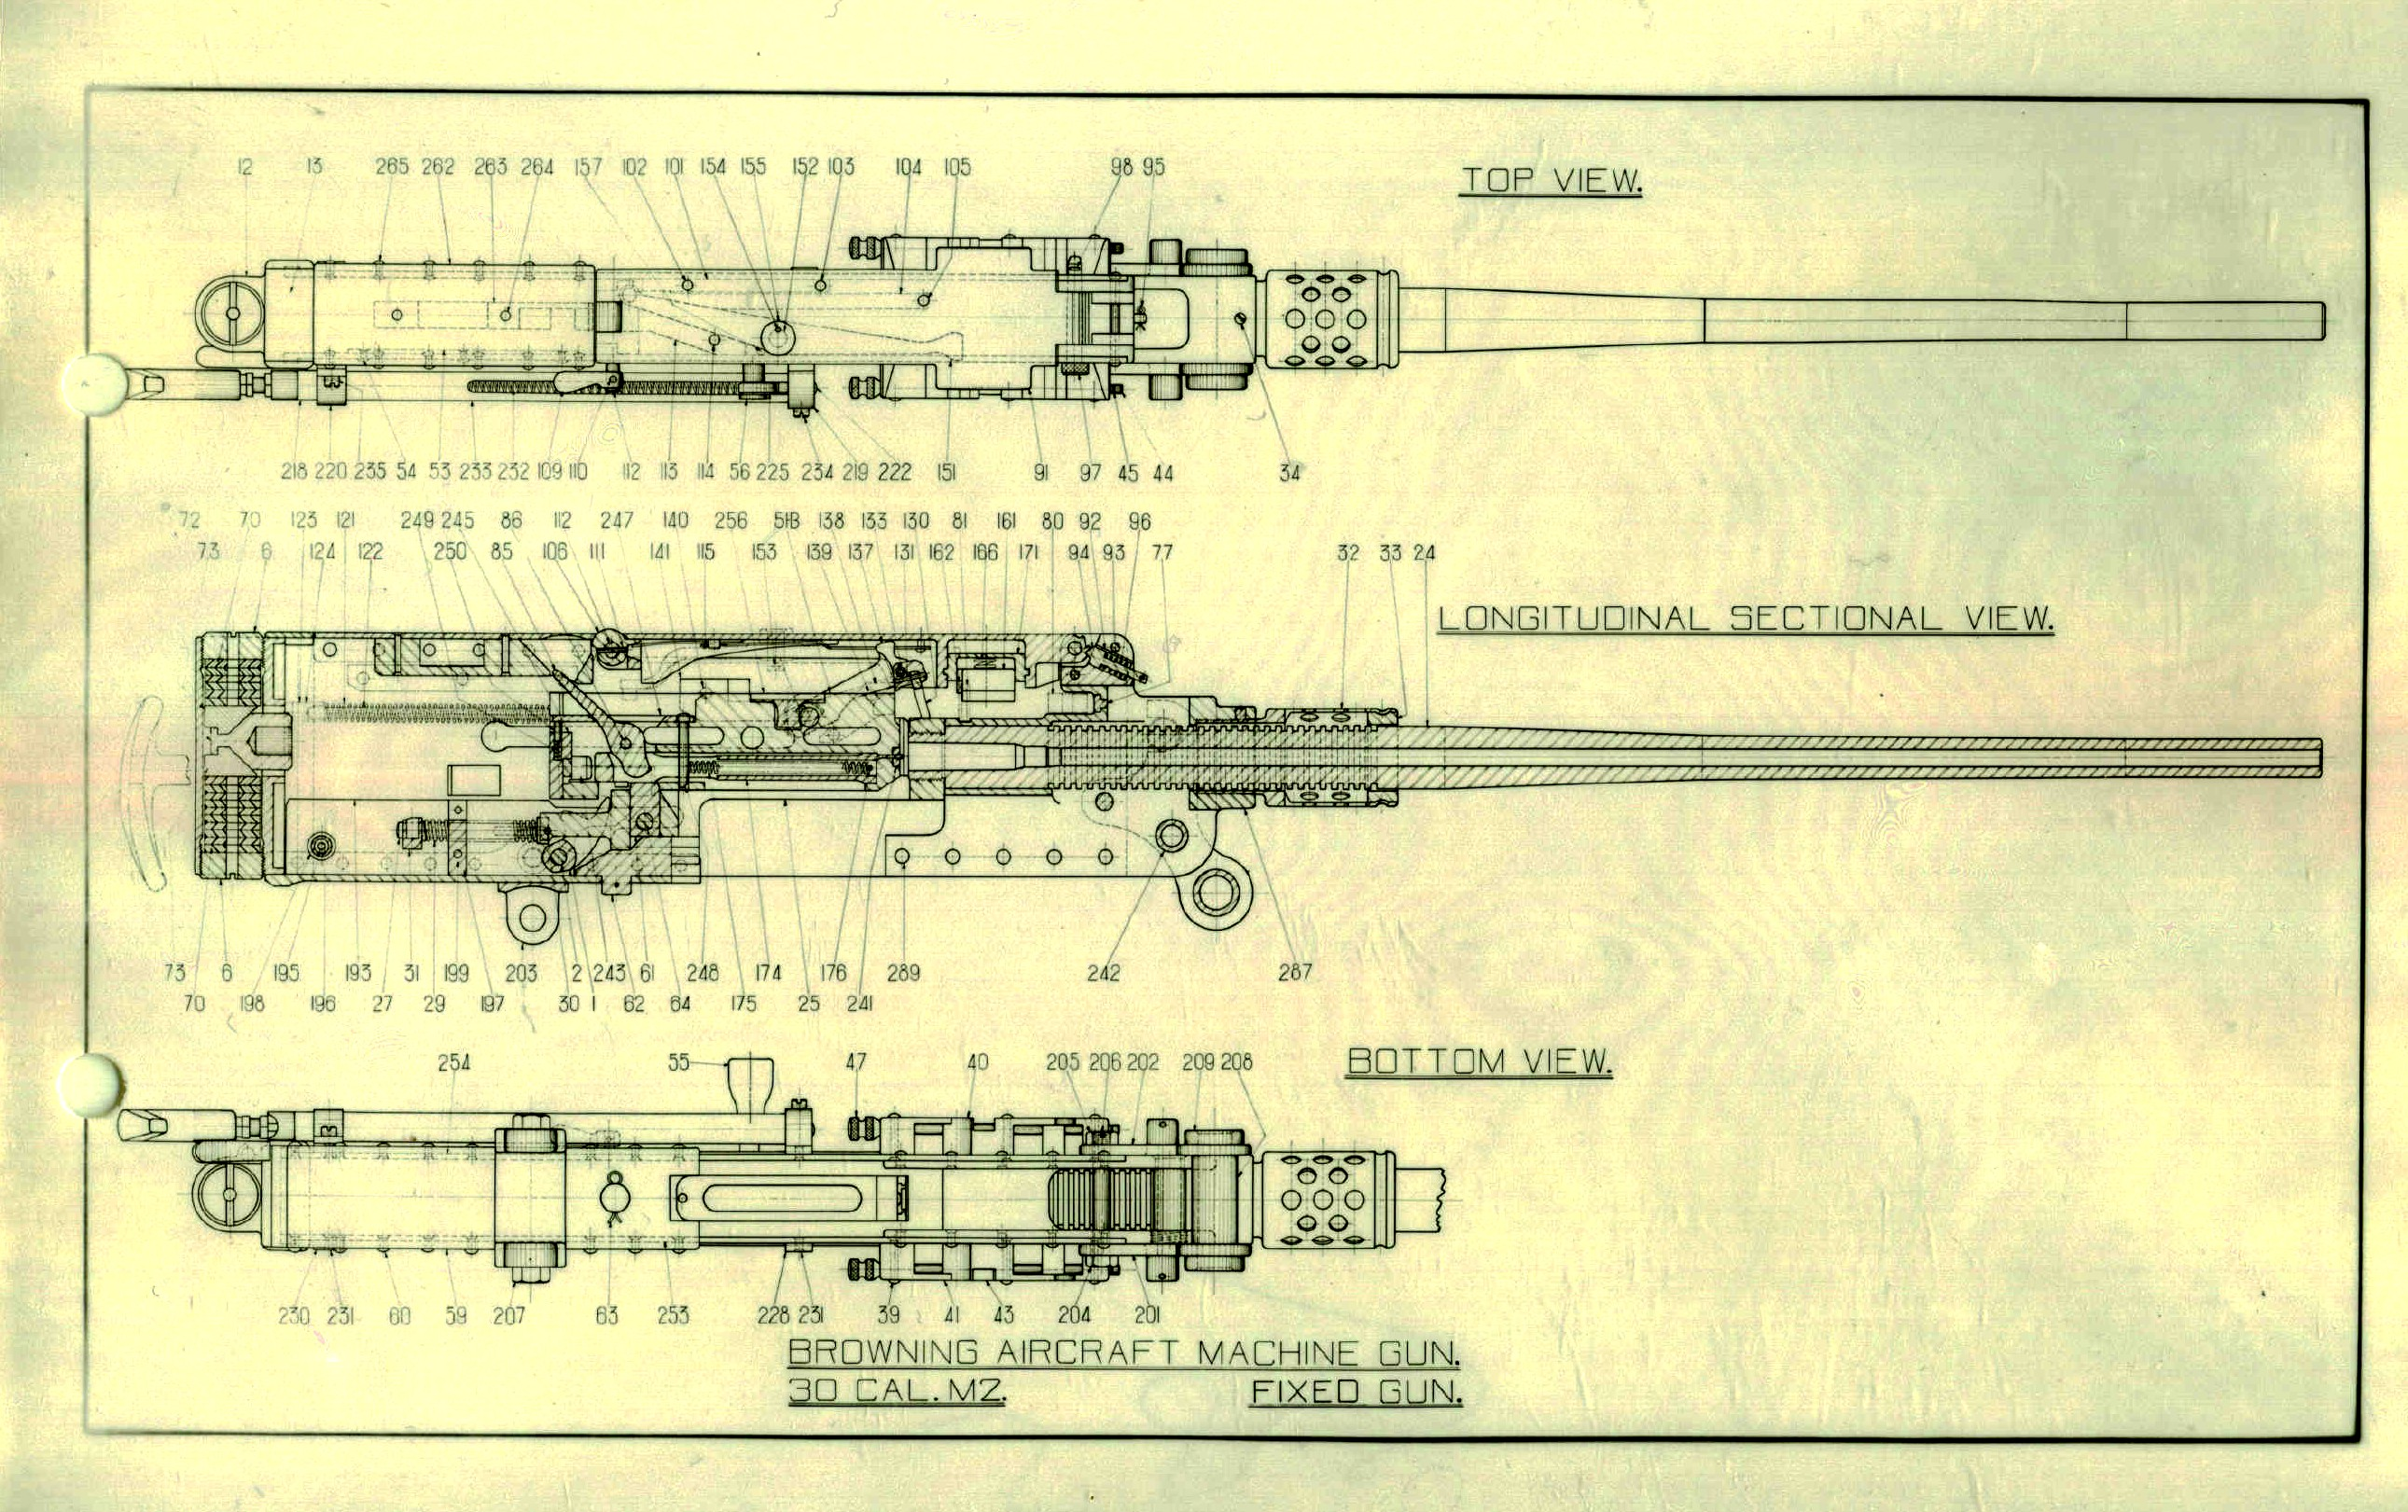 Gun Engineering Drawings And Engineering Division